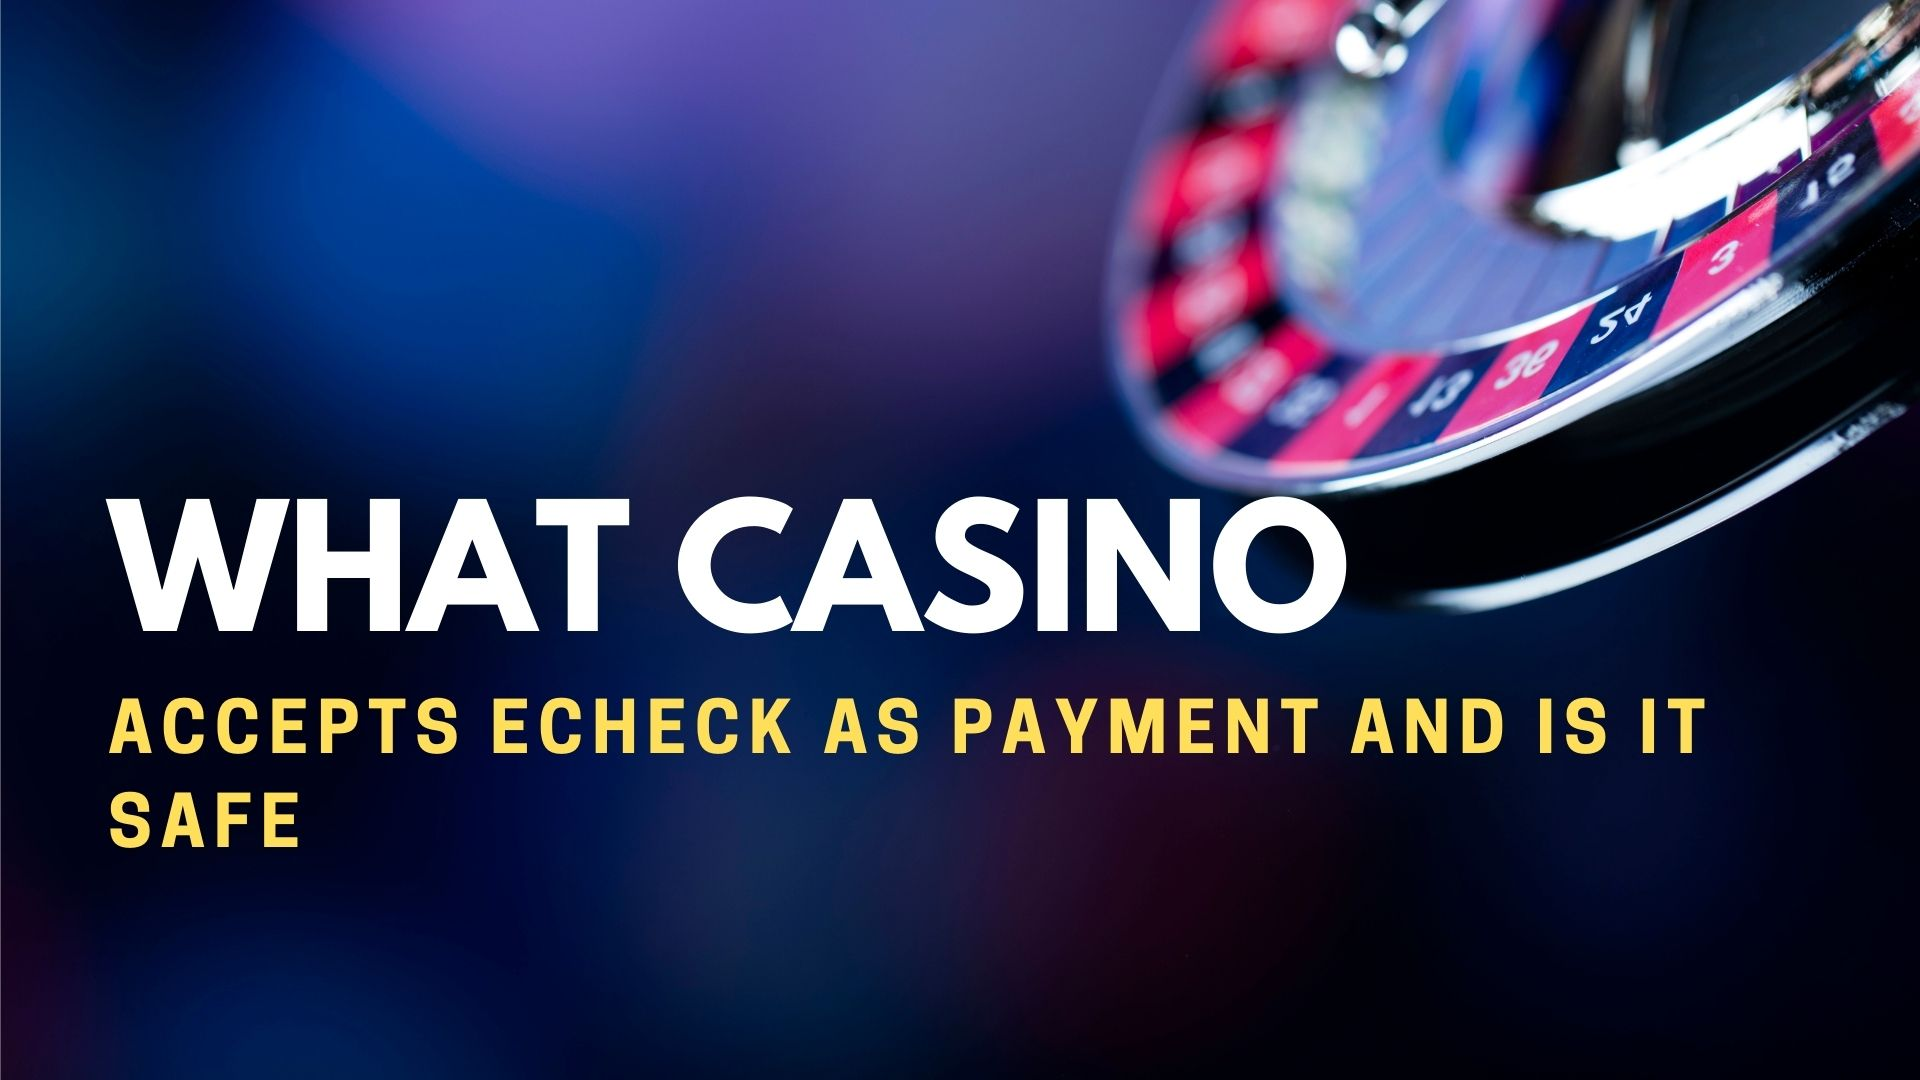 What Casino Accepts Echeck As Payment And Is It Safe